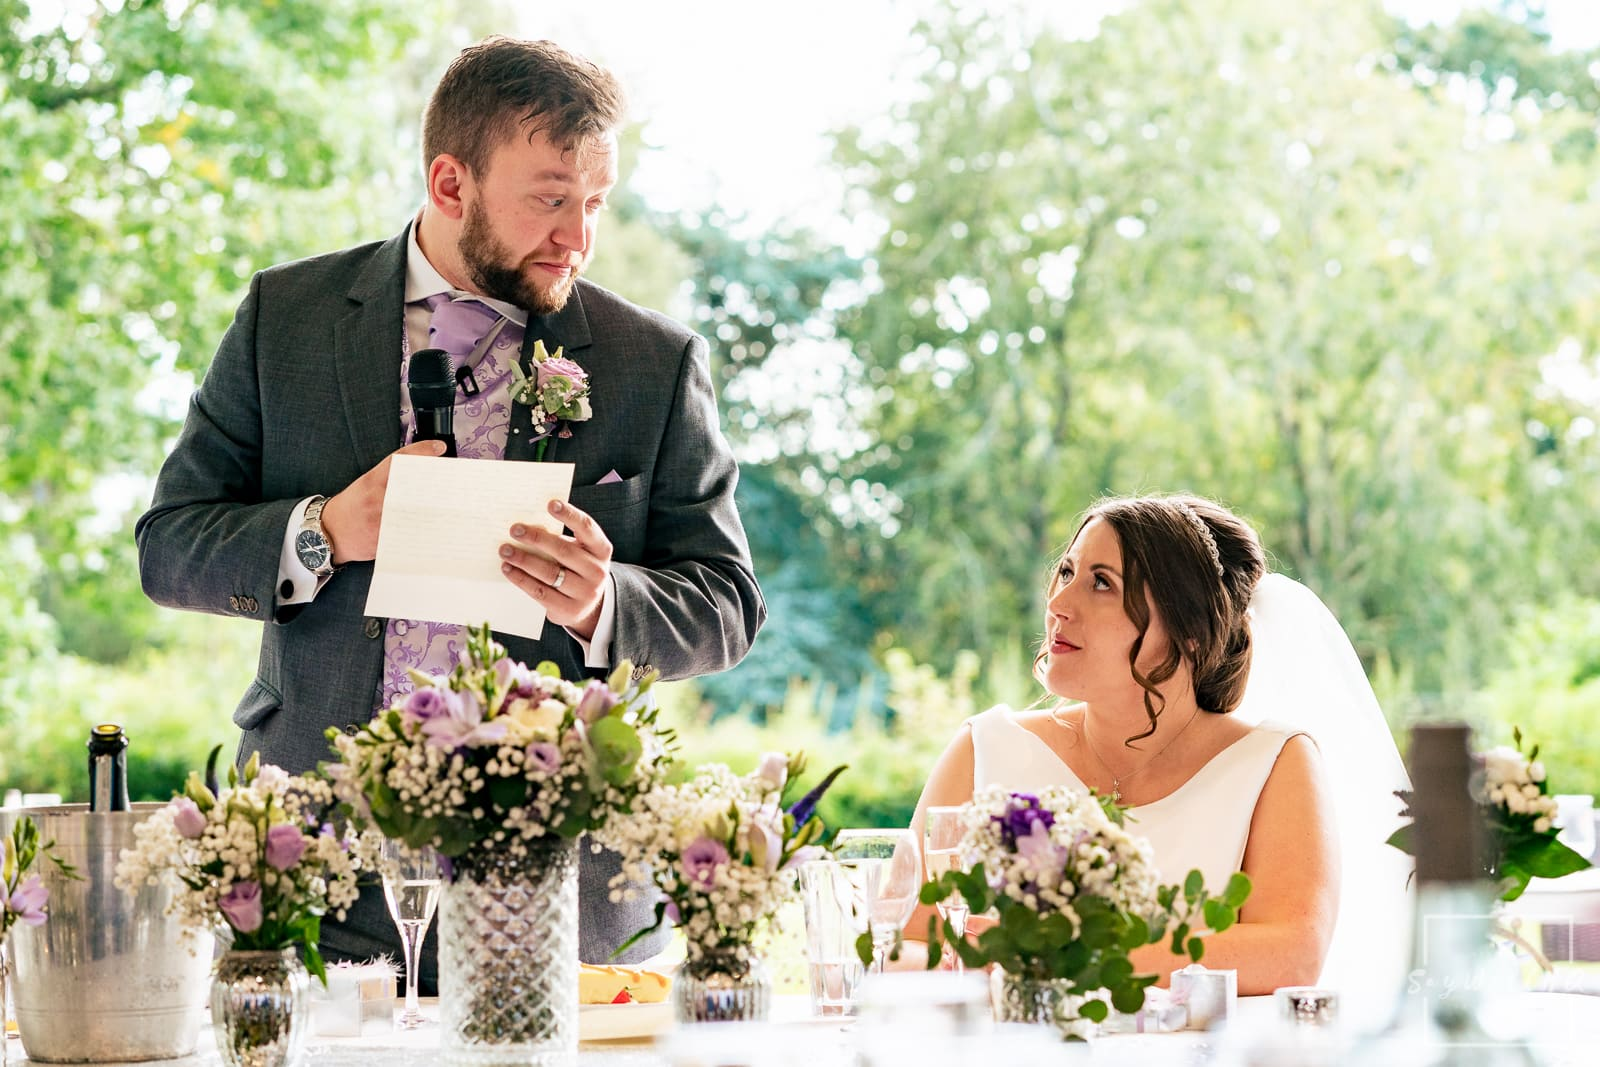 Winstanley House Wedding Photography - Groom reads his speech to his emotional bride